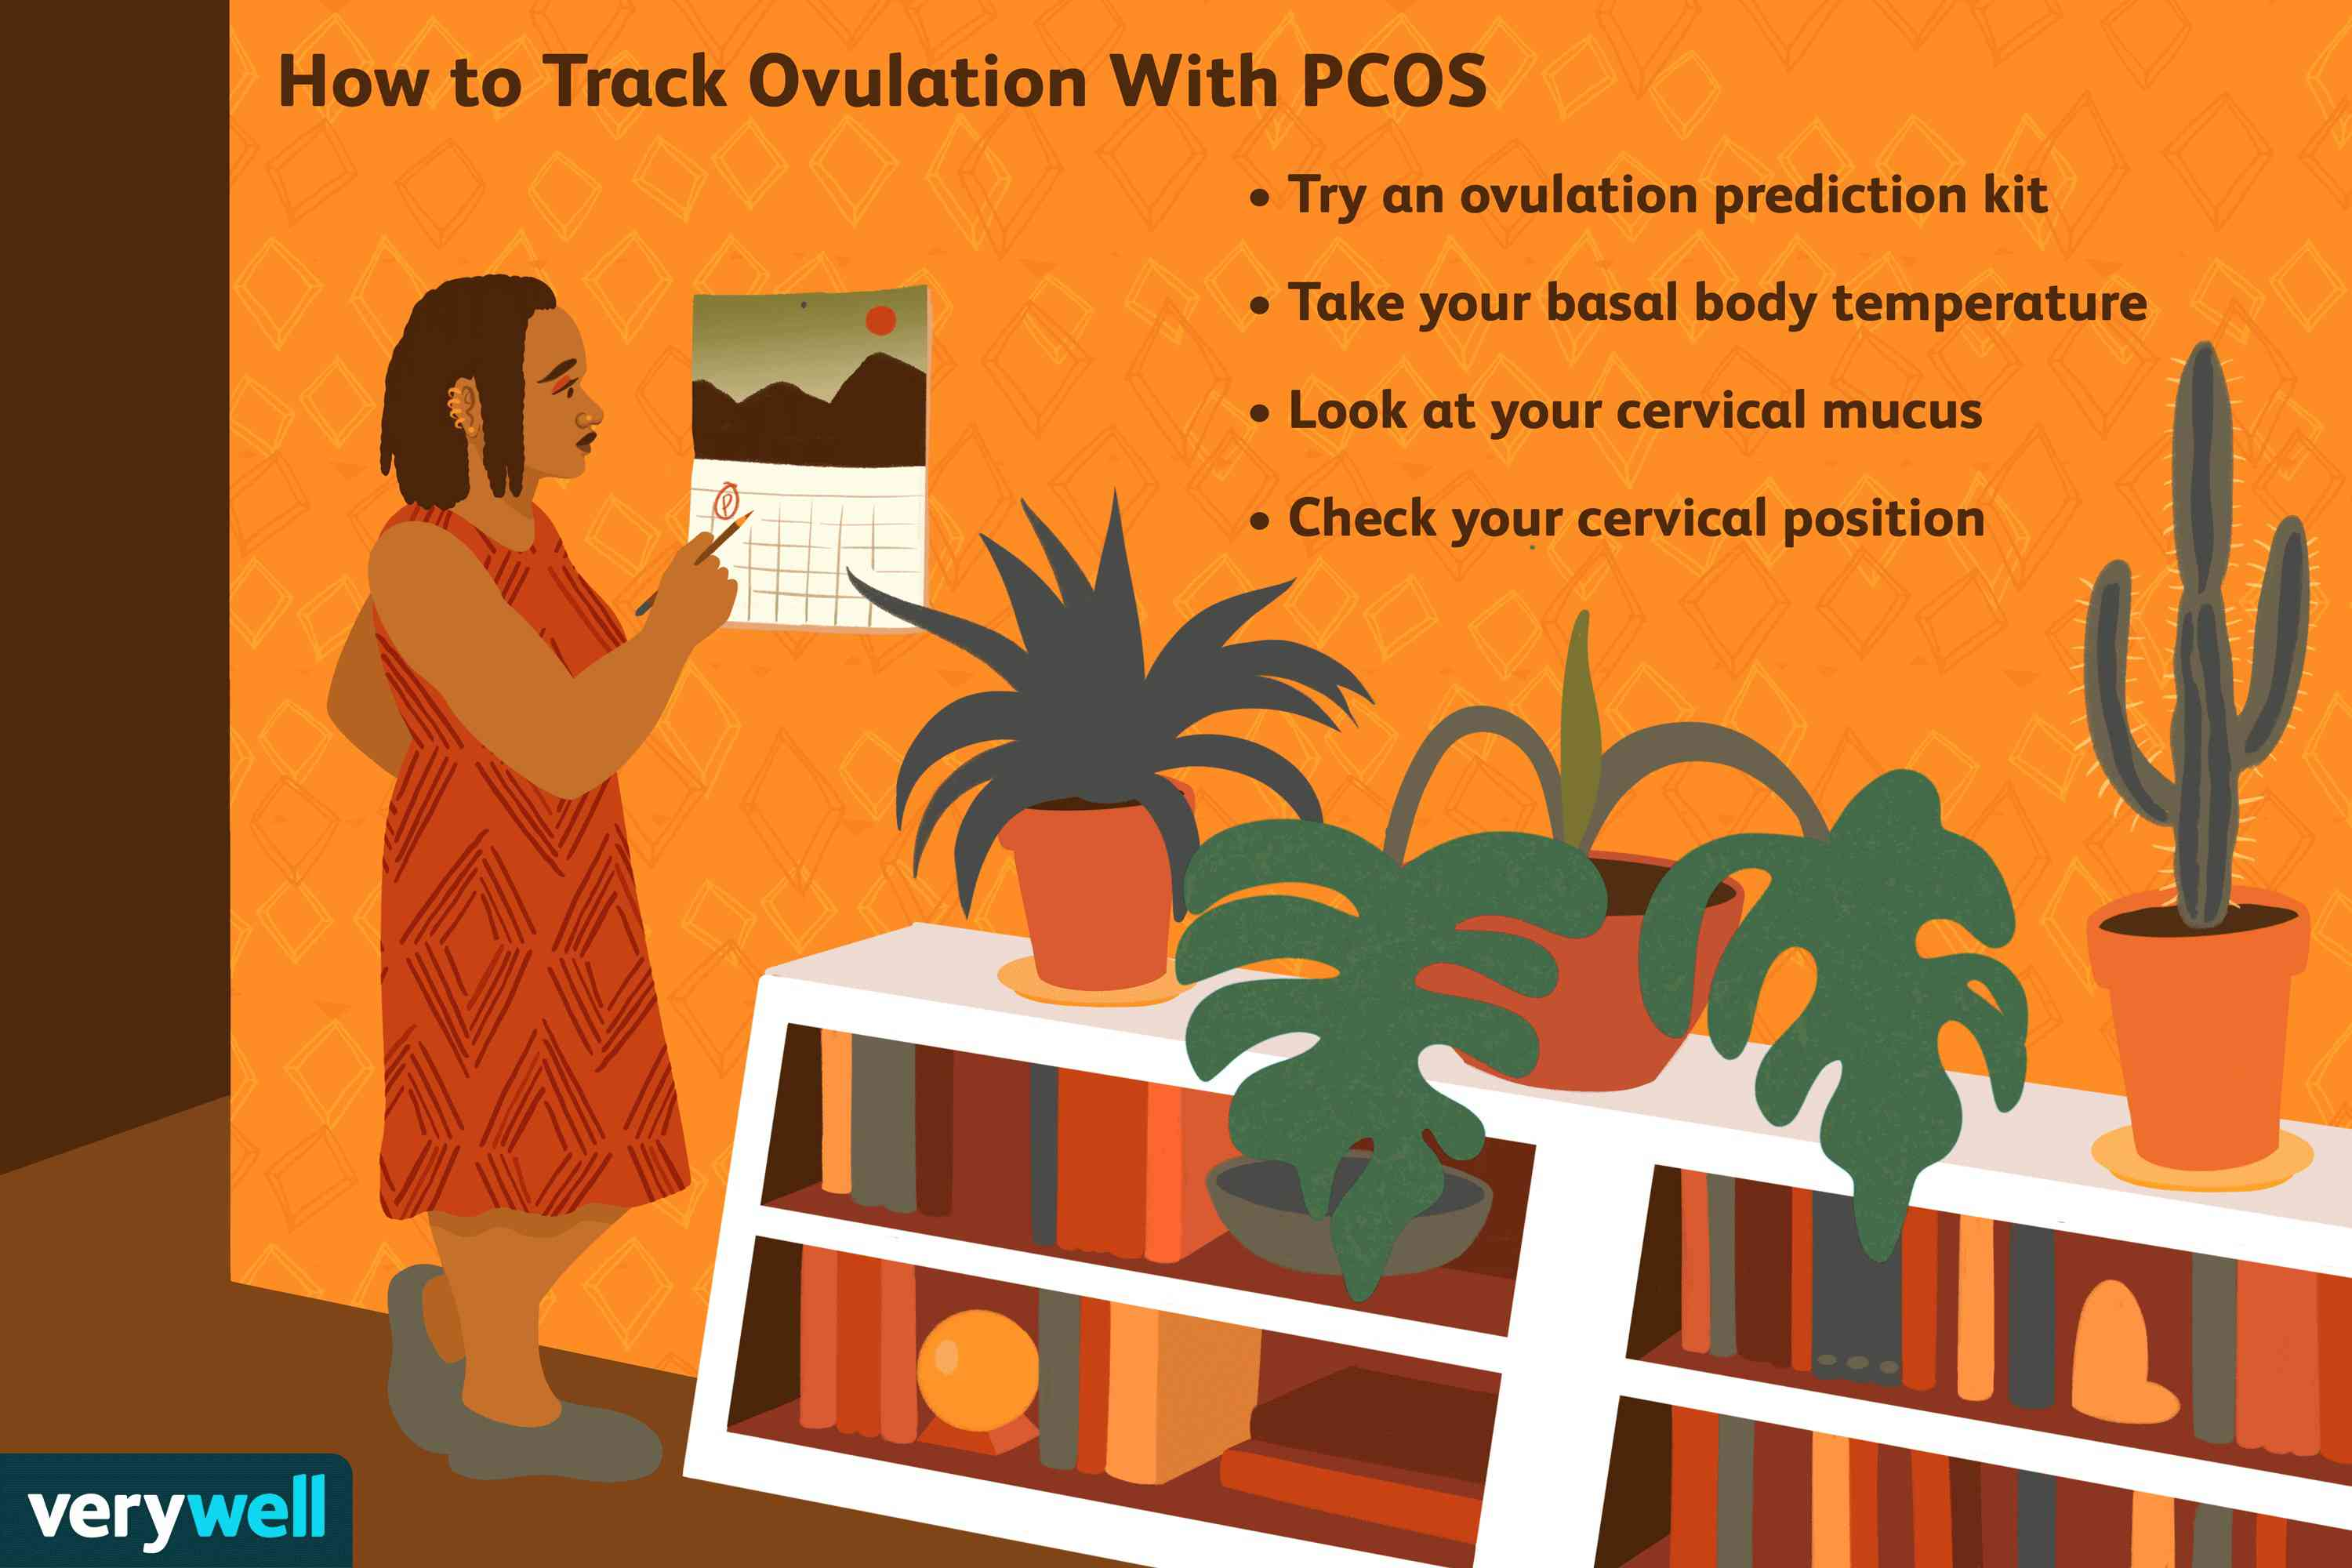 How to Track Ovulation With PCOS